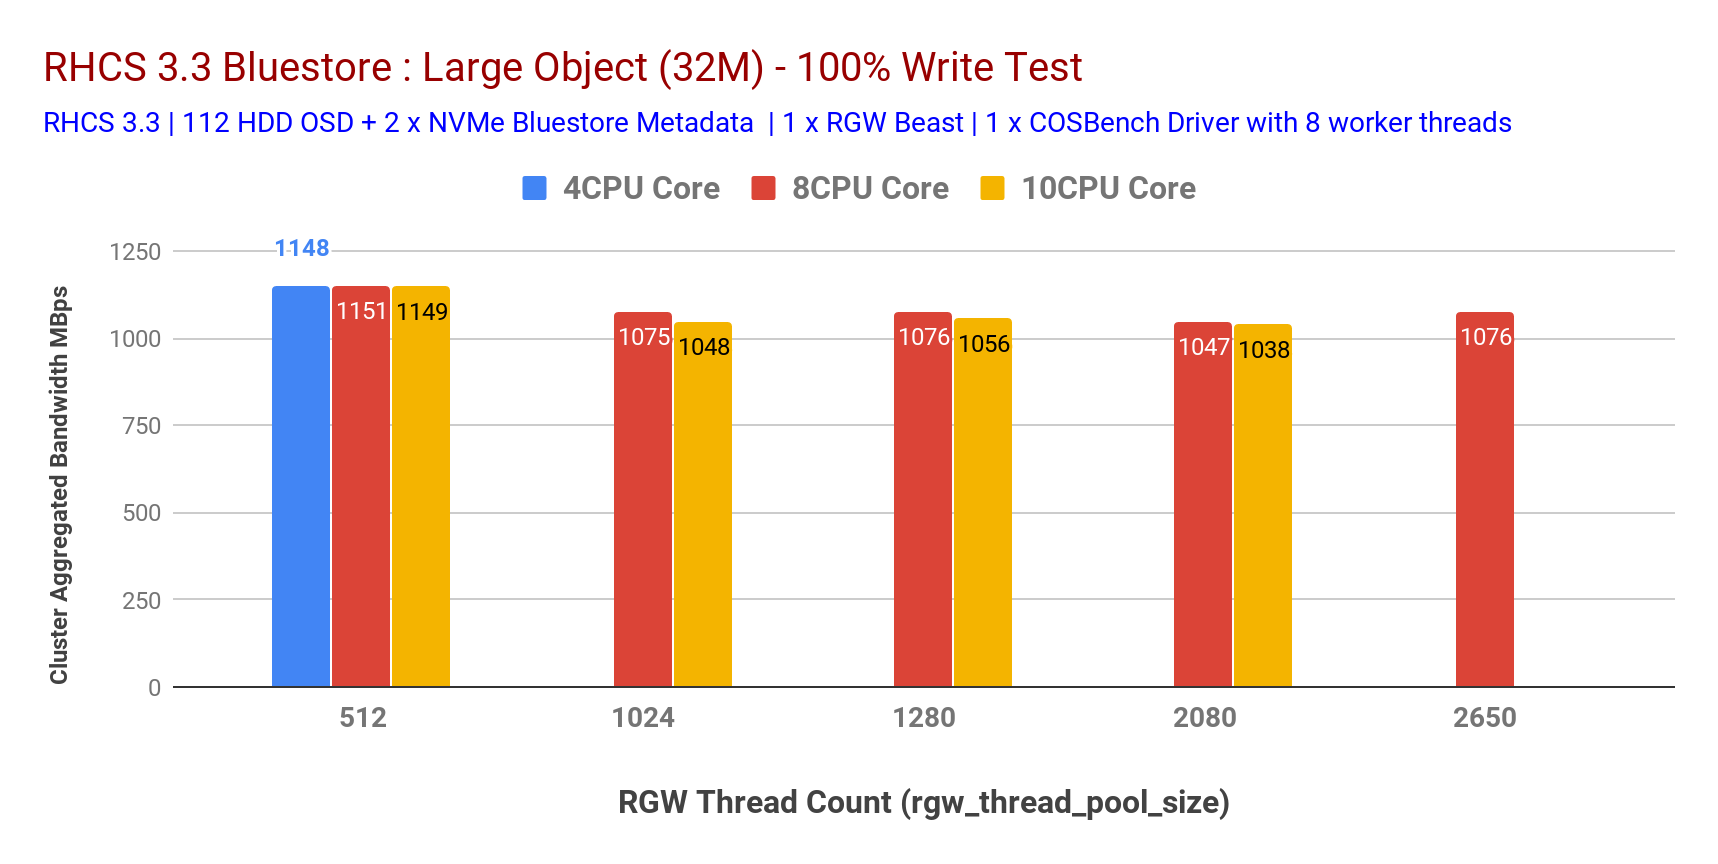 Chart 6: Large Object 100% write test